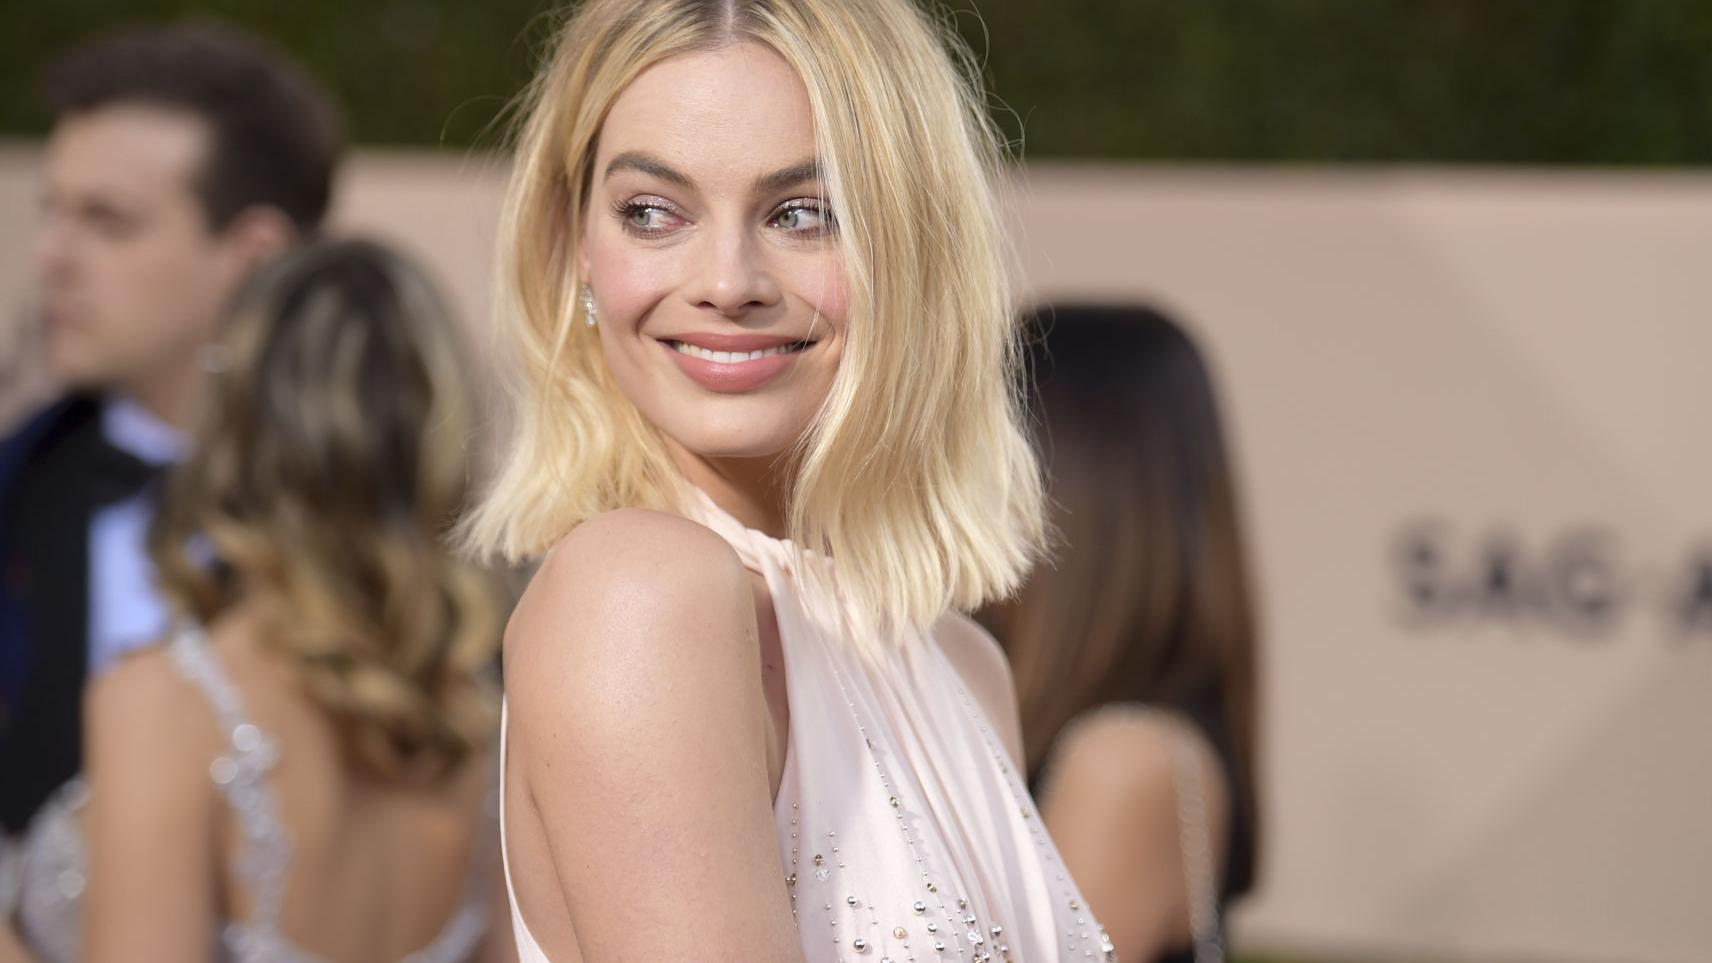 Scenes from the red carpet at the 24th annual SAG Awards